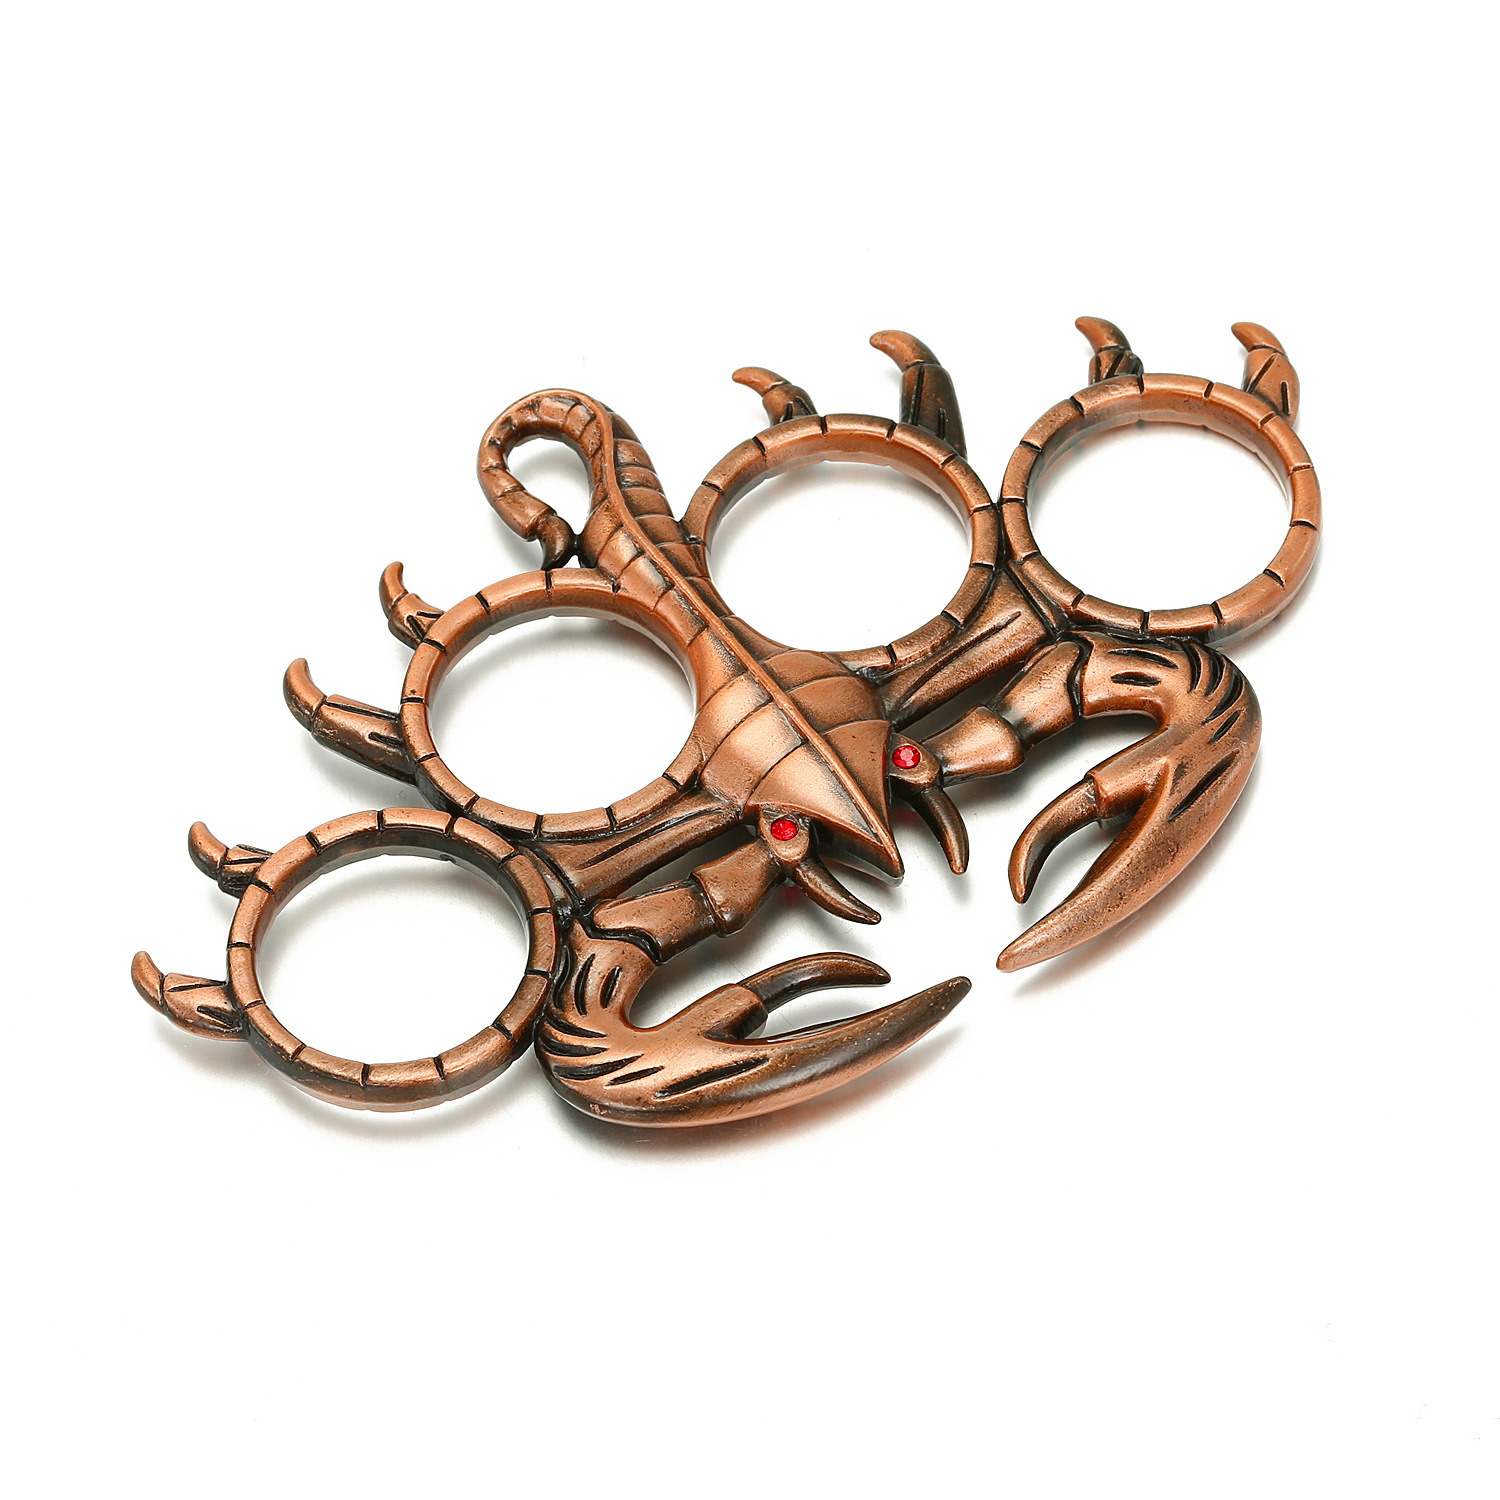 Copper Vintage Joint Ring Game Ring Bronze Scorpion Hand Expanded Metal Bracelet Wholesale NHGO204356